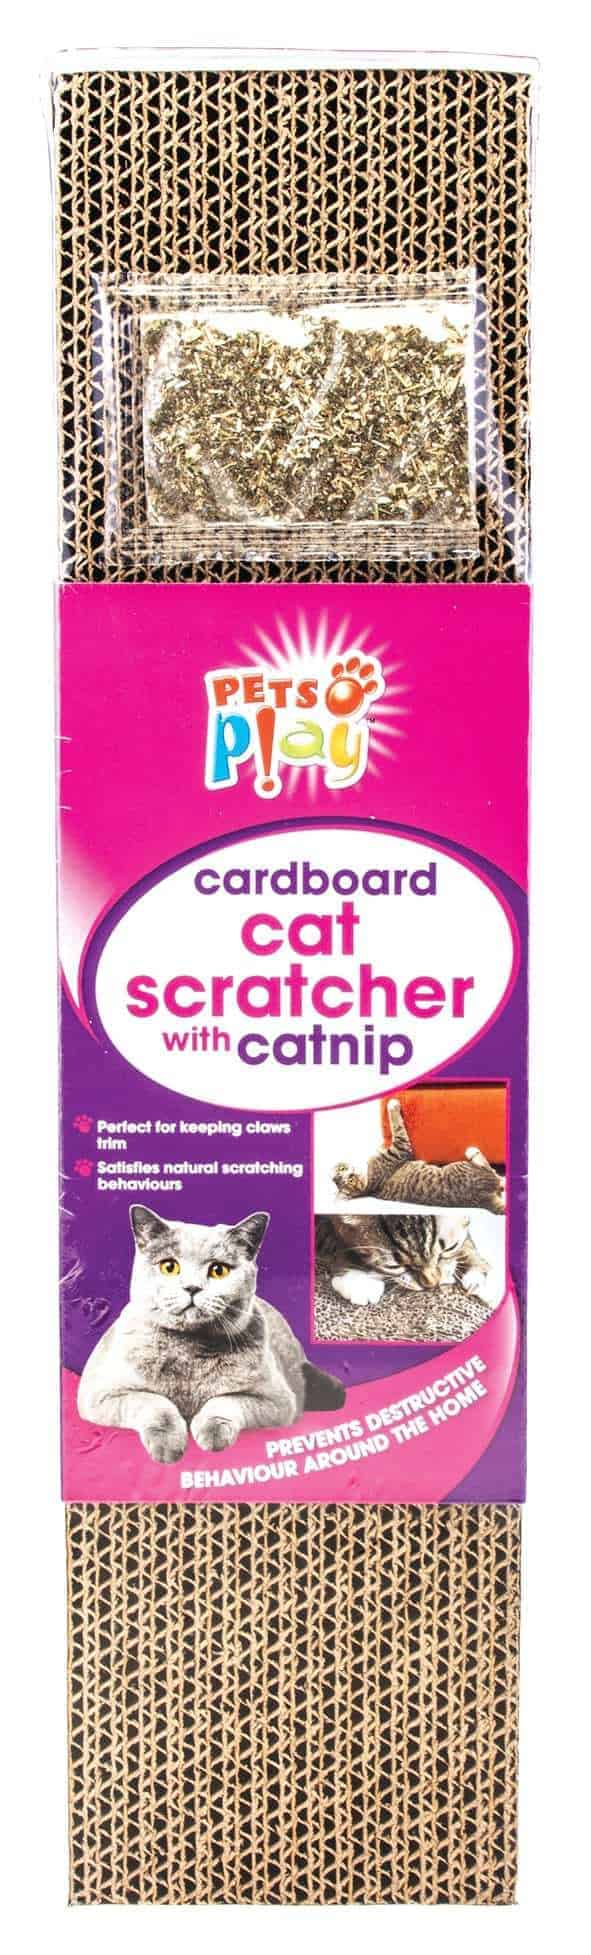 Pets At Play Cat Scratcher With Cat Nip